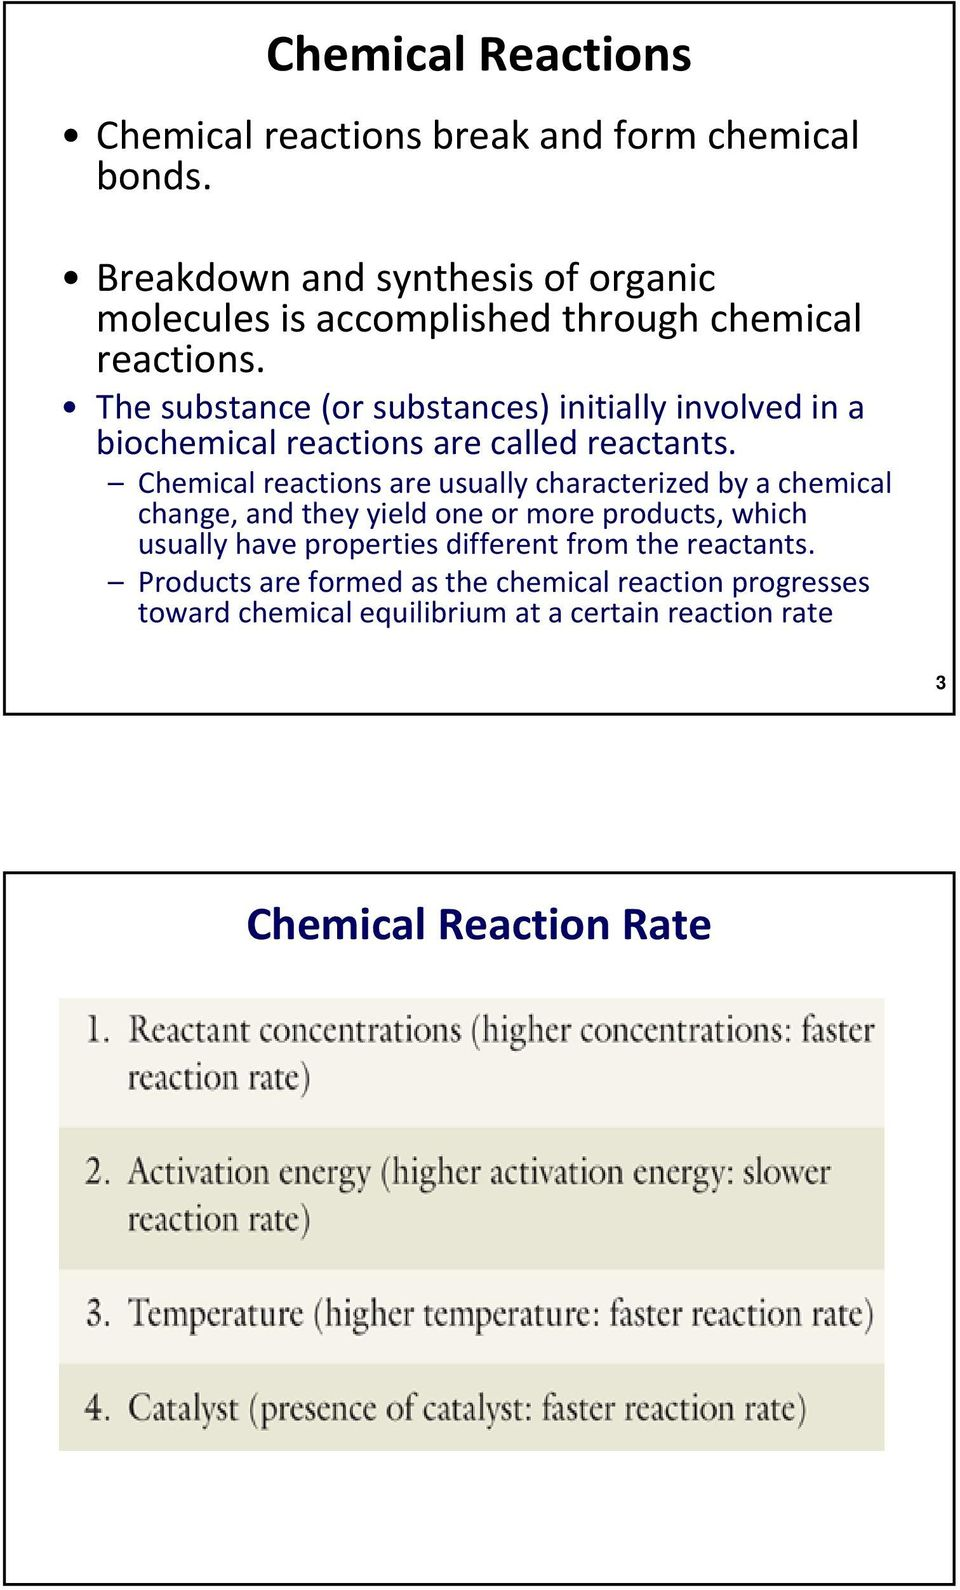 The substance (or substances) initially involved in a biochemical reactions are called reactants.